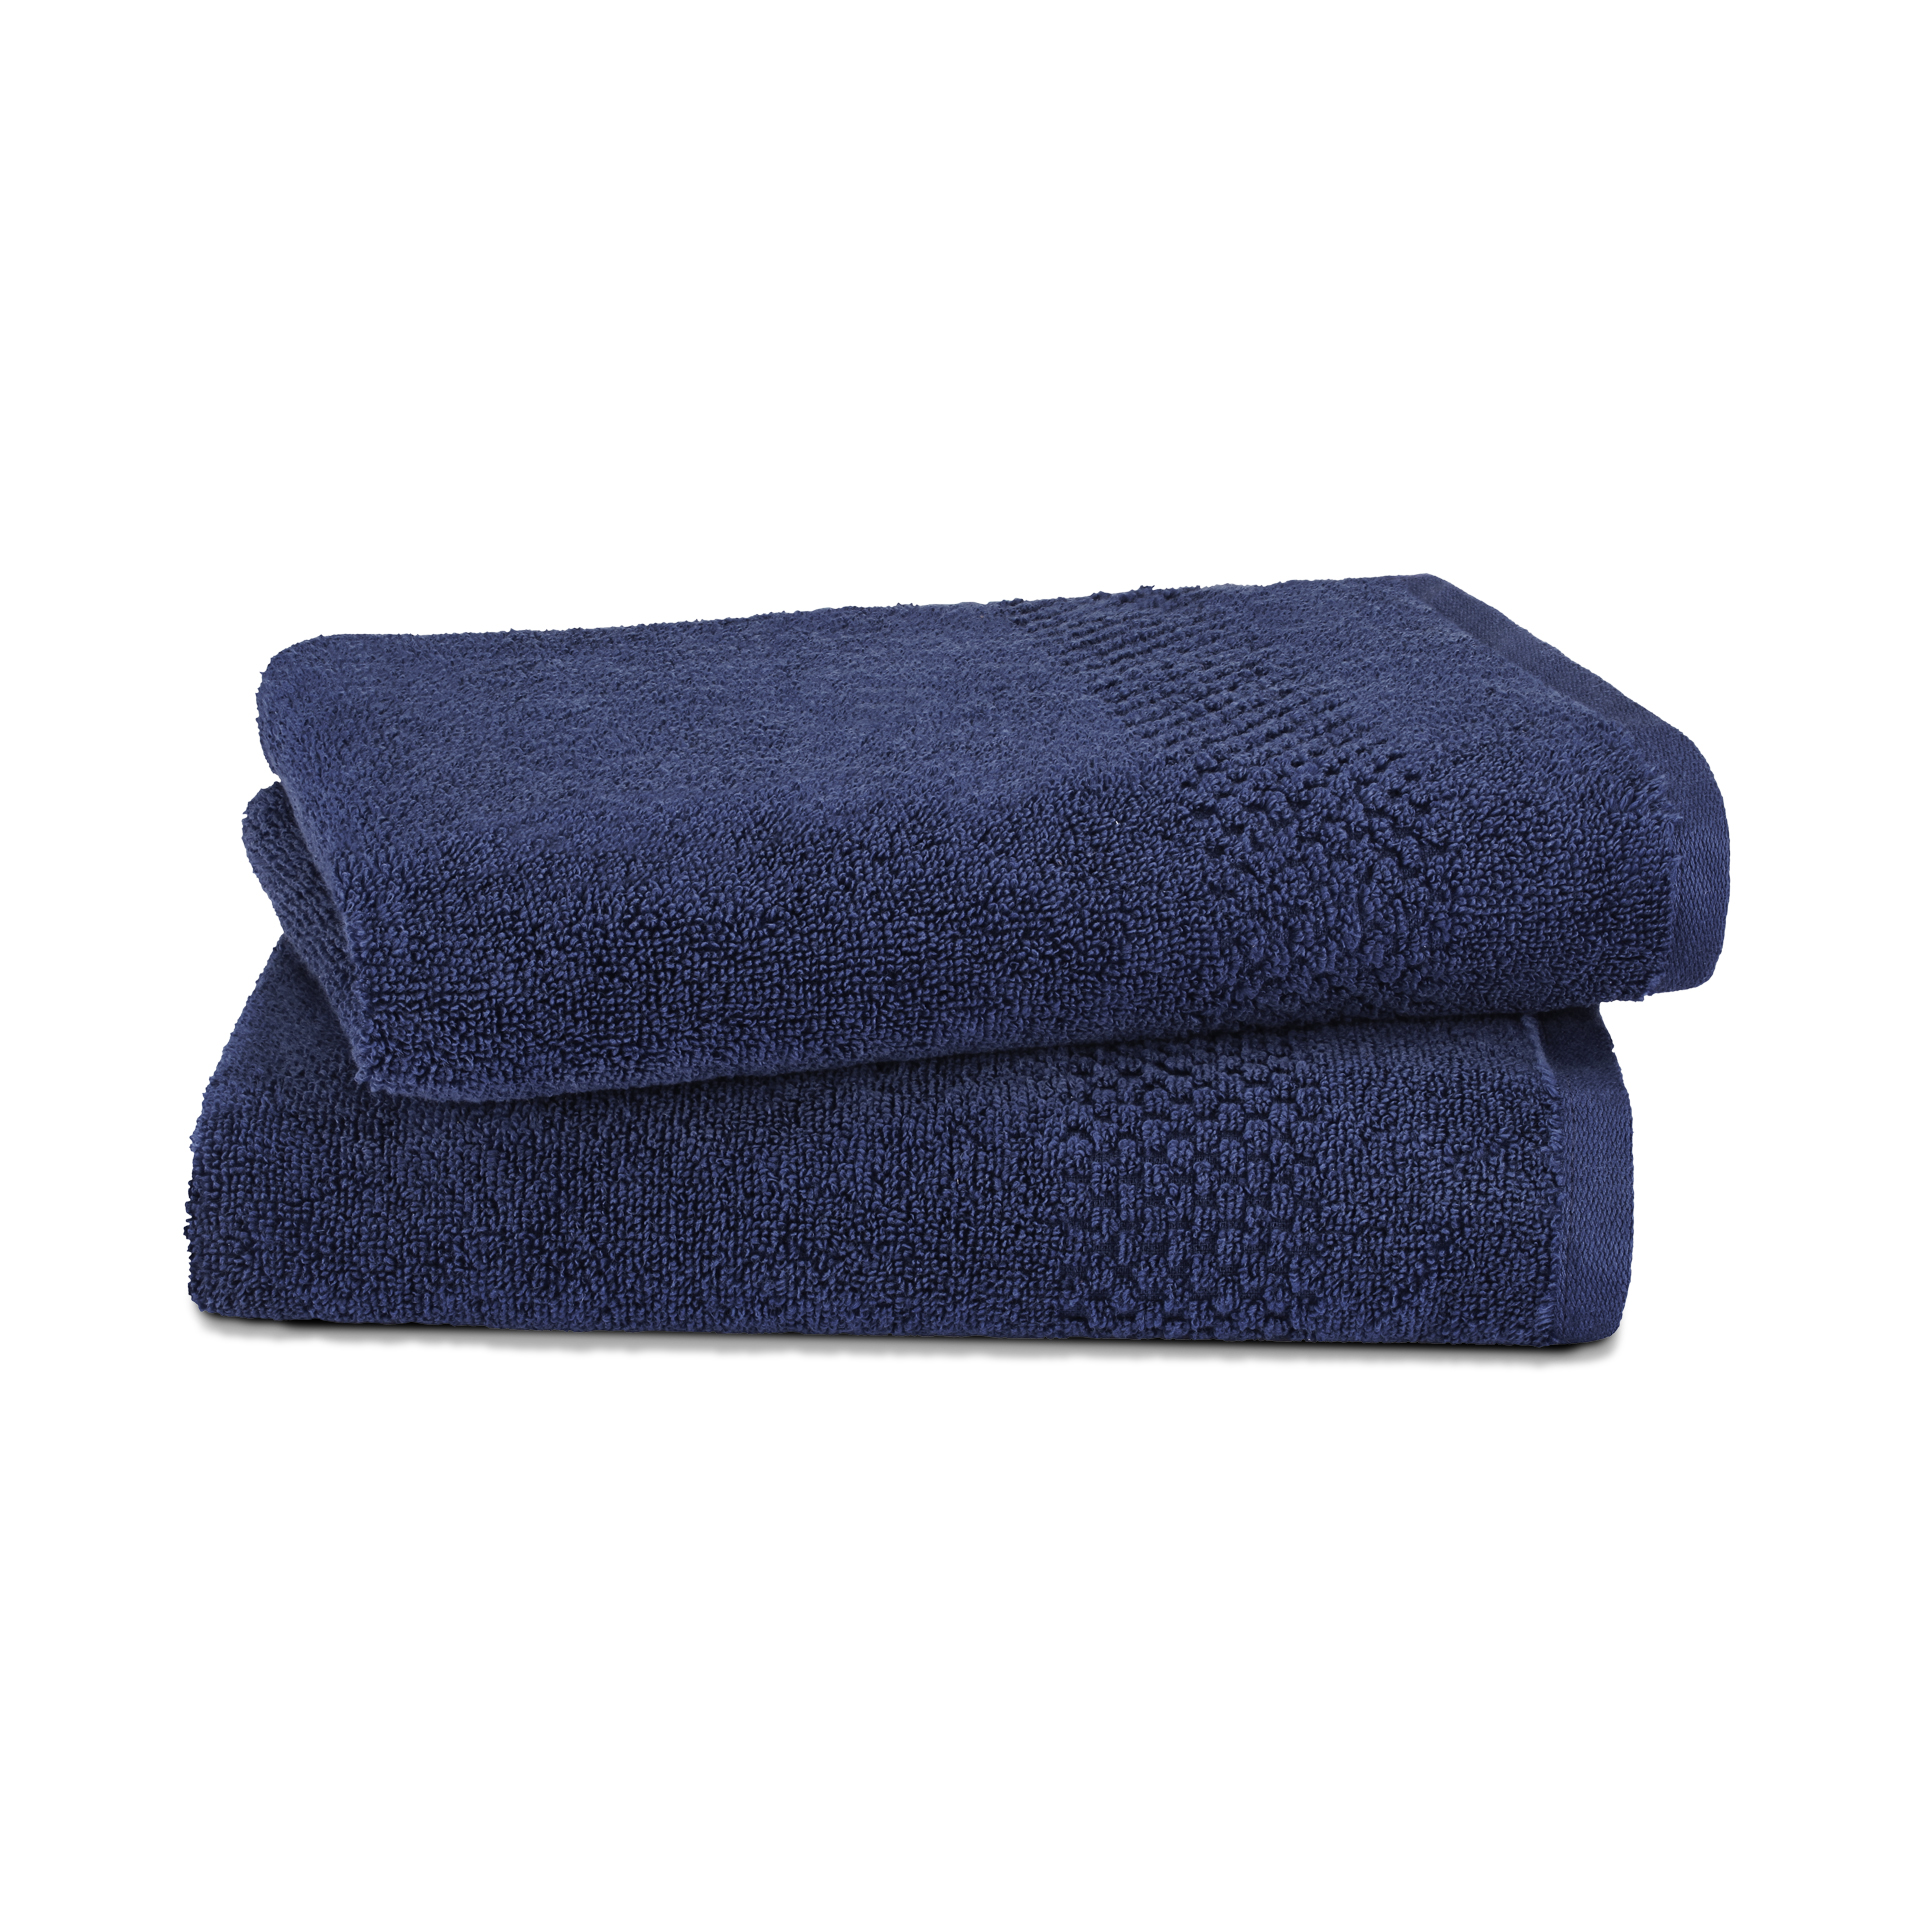 Spaces Atrium Cotton Double Bed Sheets in Navy Blue Colour by Spaces